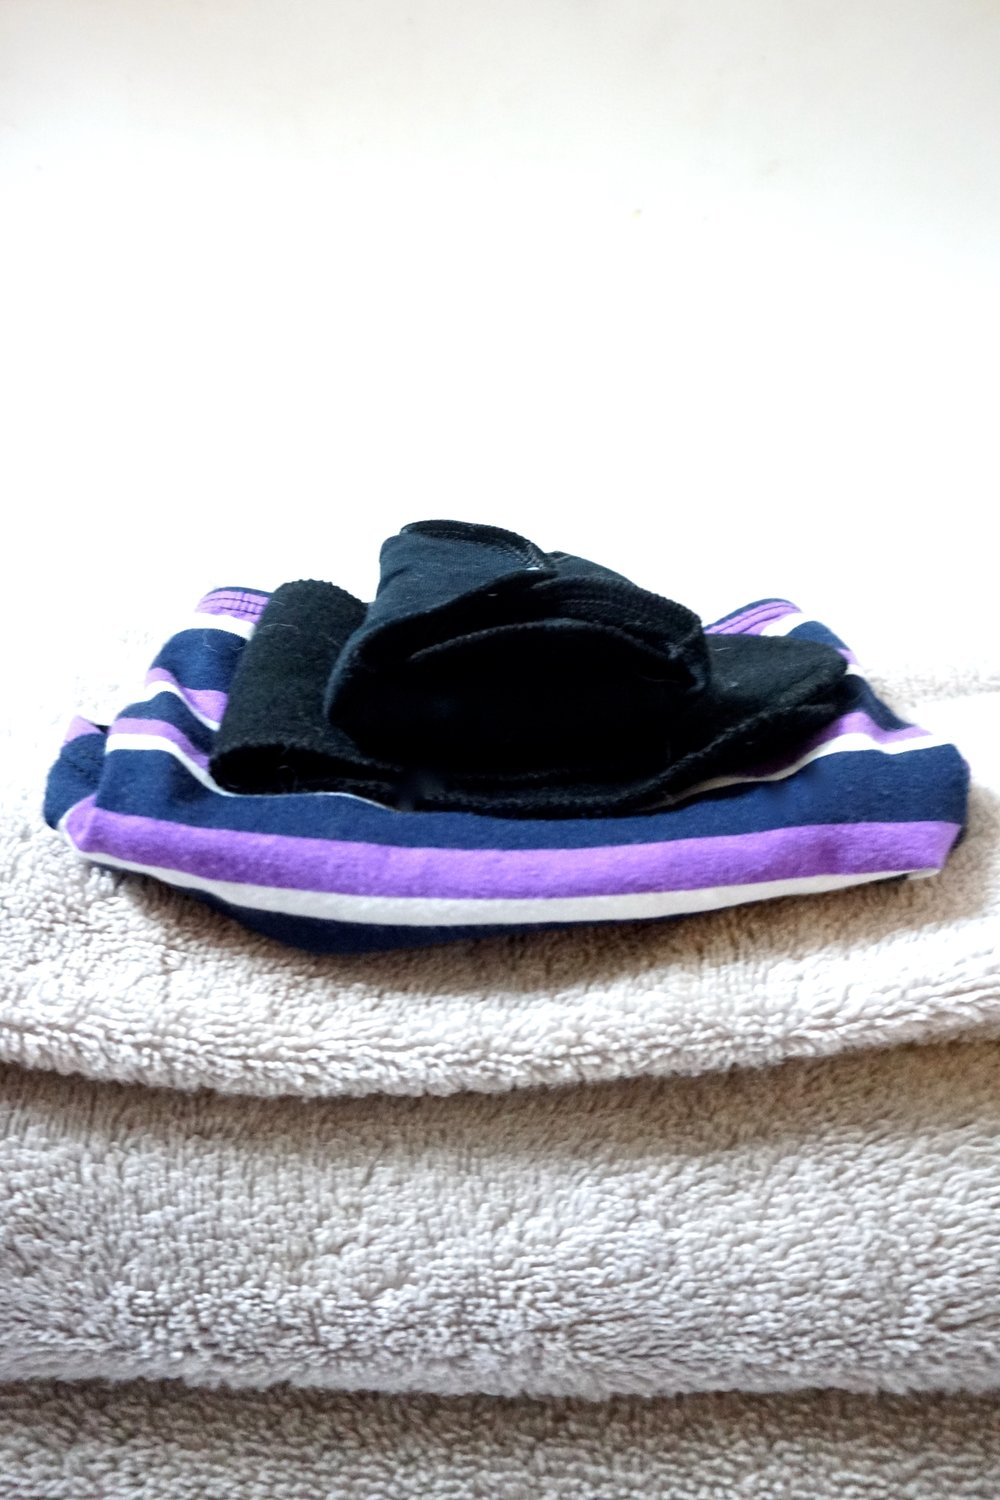 Have an eco-friendly, zero waste period by switching to cloth pads or period panties. It's better for the environment, your health, and it's super frugal! Learn more about this zero waste menstruation option at www.goingzerowaste.com